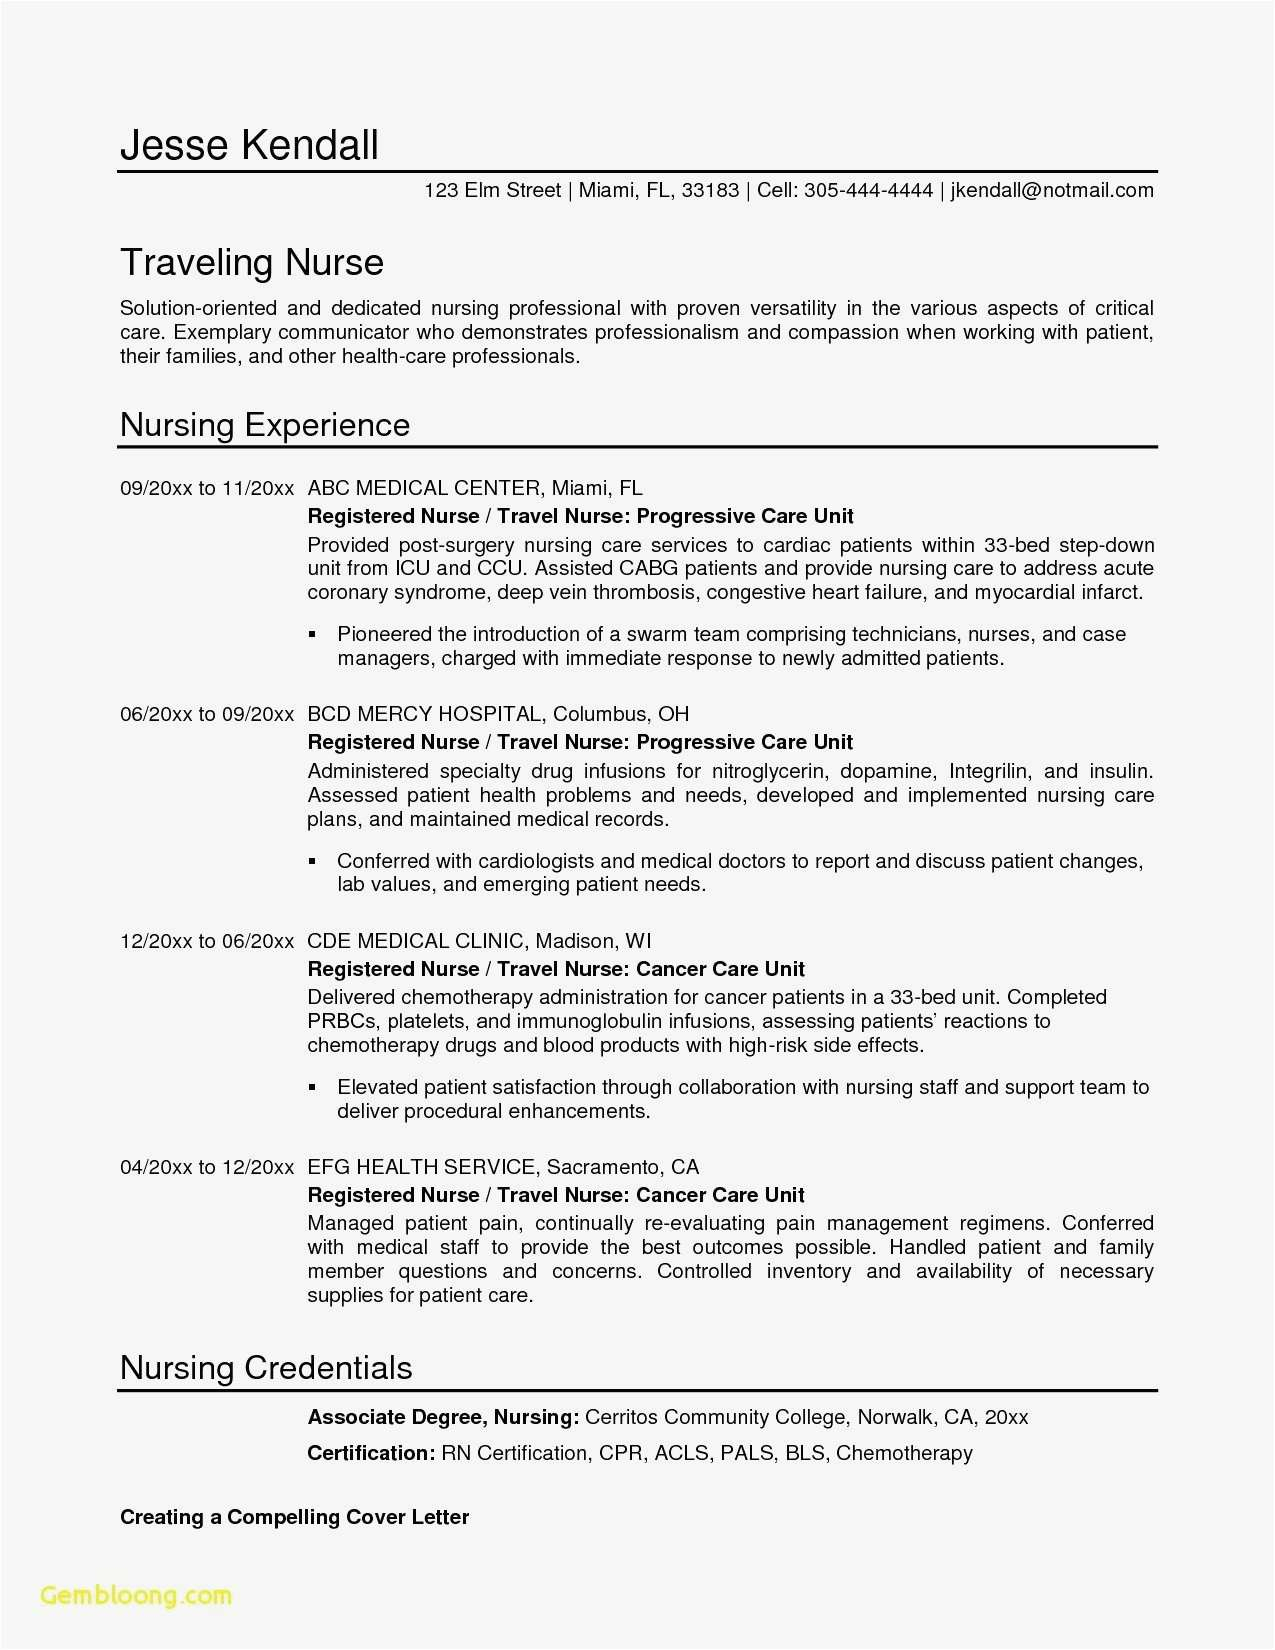 Resume Template for Healthcare - 25 New Resume Templates Word Picture